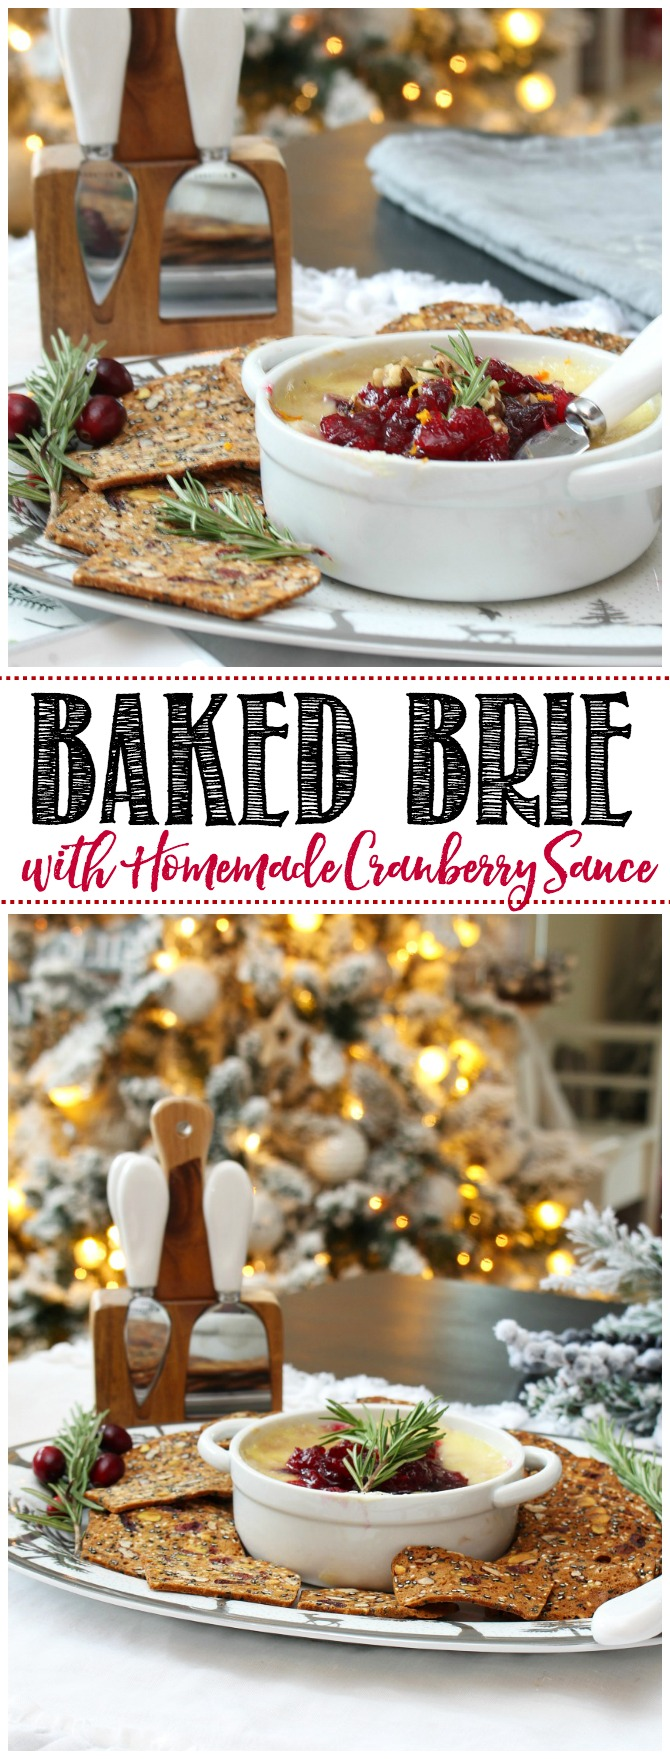 Delicious baked brie with homemade cranberry sauce.  This is the perfect holiday appetizer for any party or gathering!